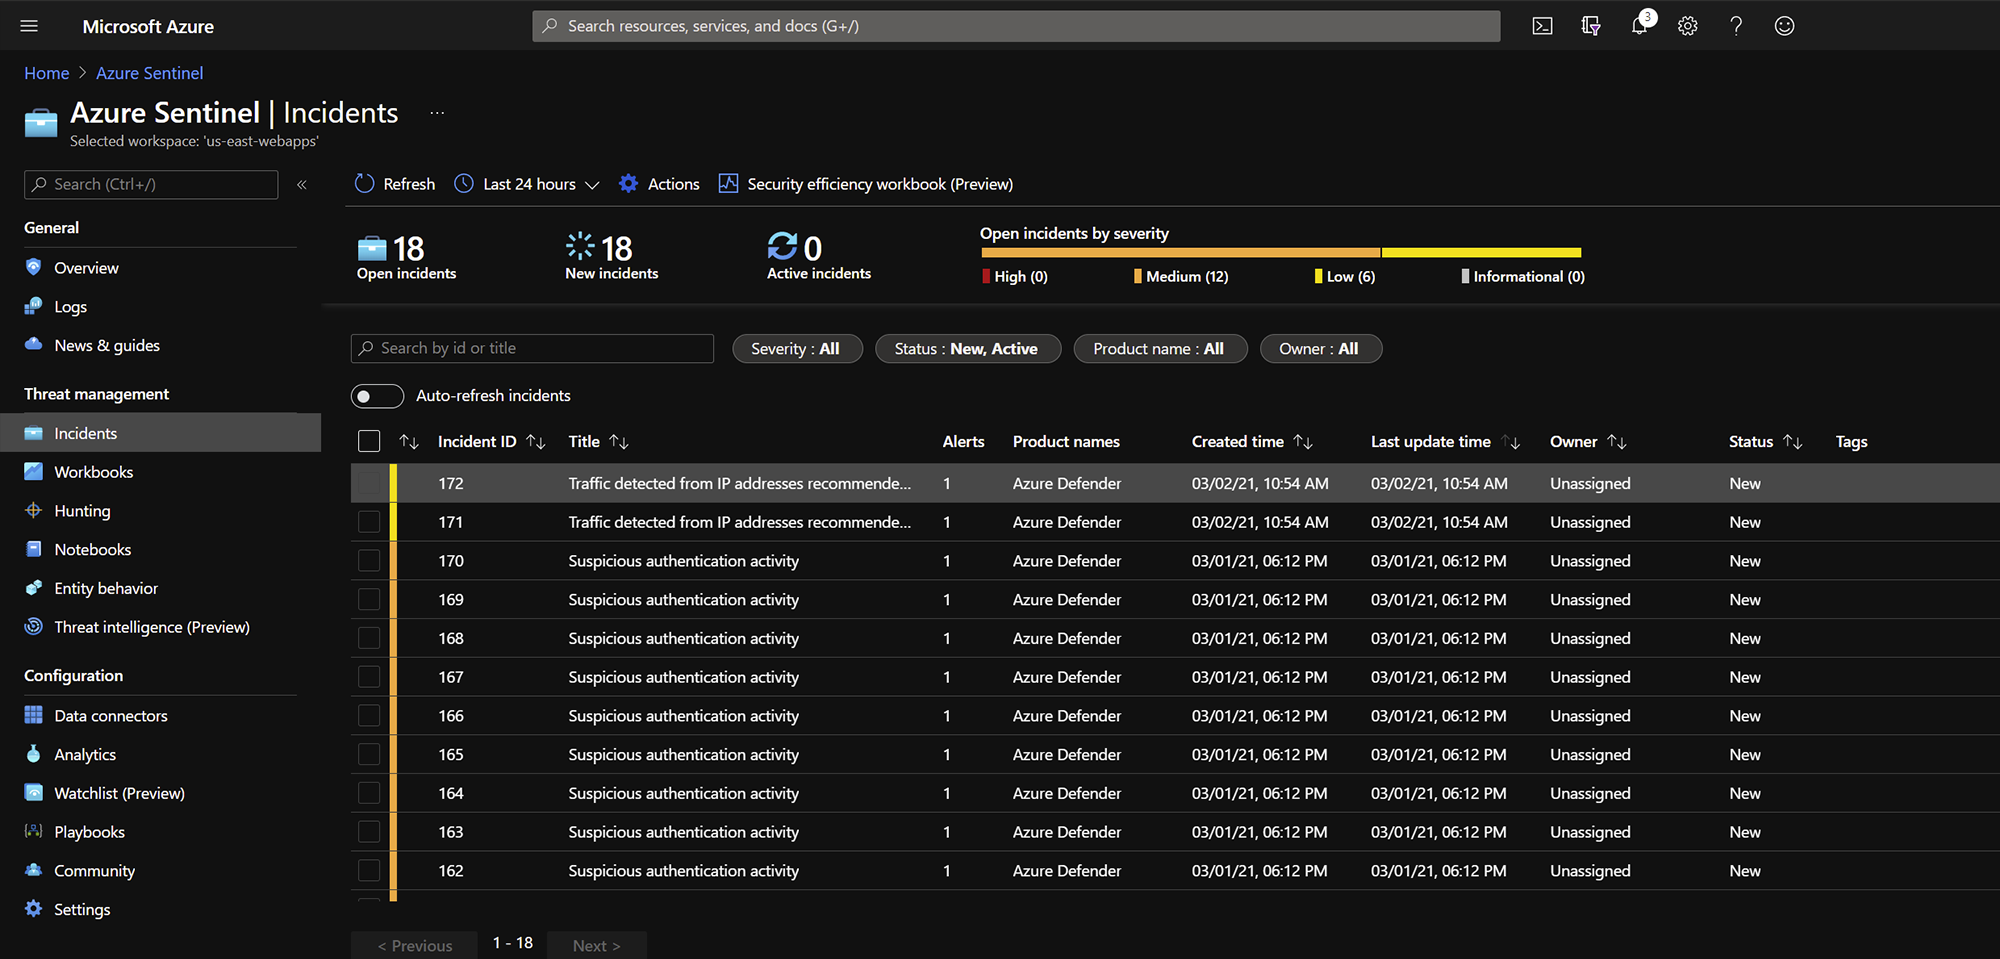 Azure Incidents interface